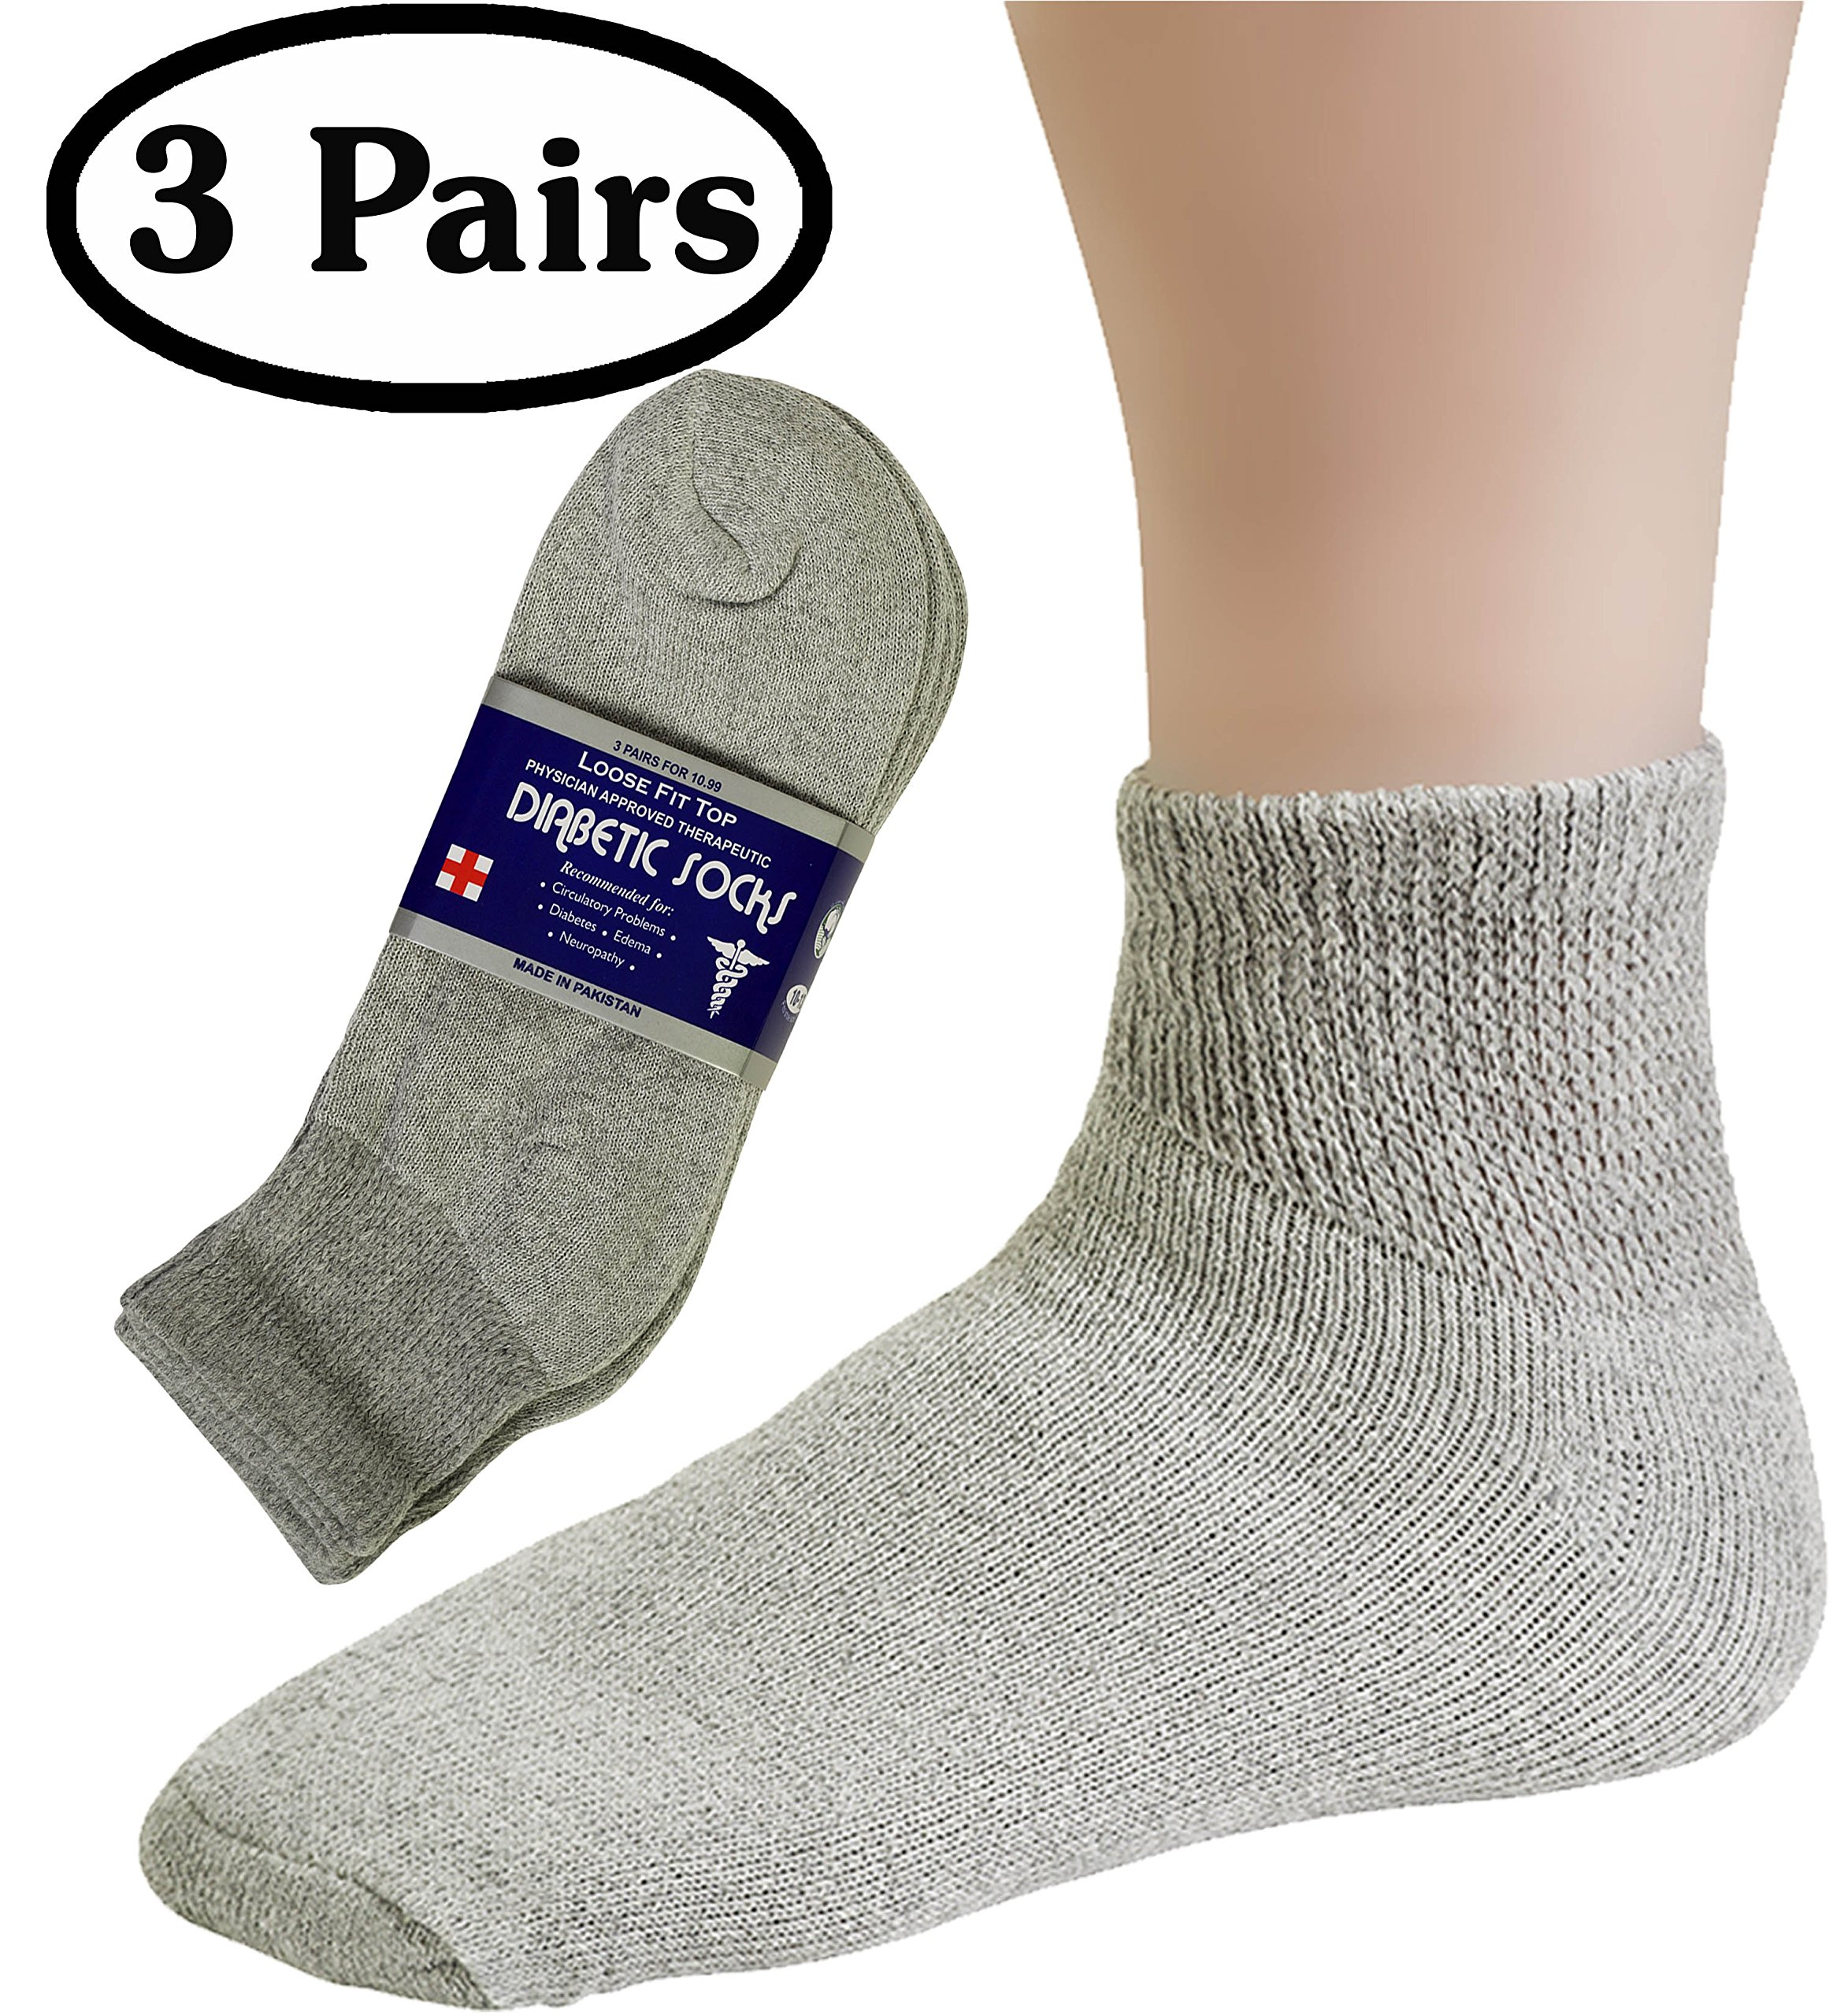 Amazon.com: Diabetic Mens Ankle Socks (3 Pack) 10-13, Gray